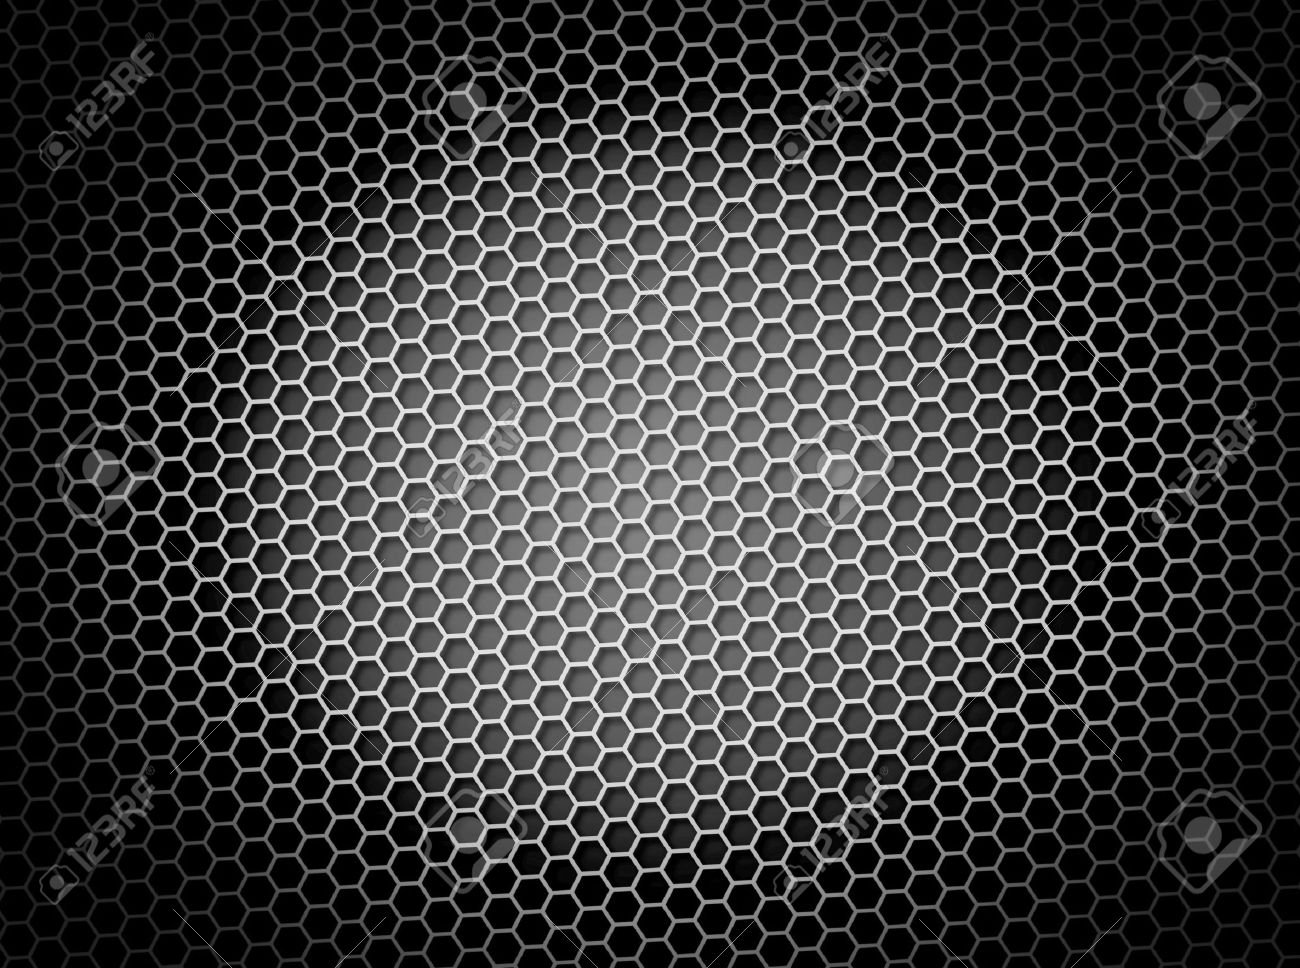 Black and white honeycomb background 3d illustration or backdrop with light effect Stock Illustration - 5535302